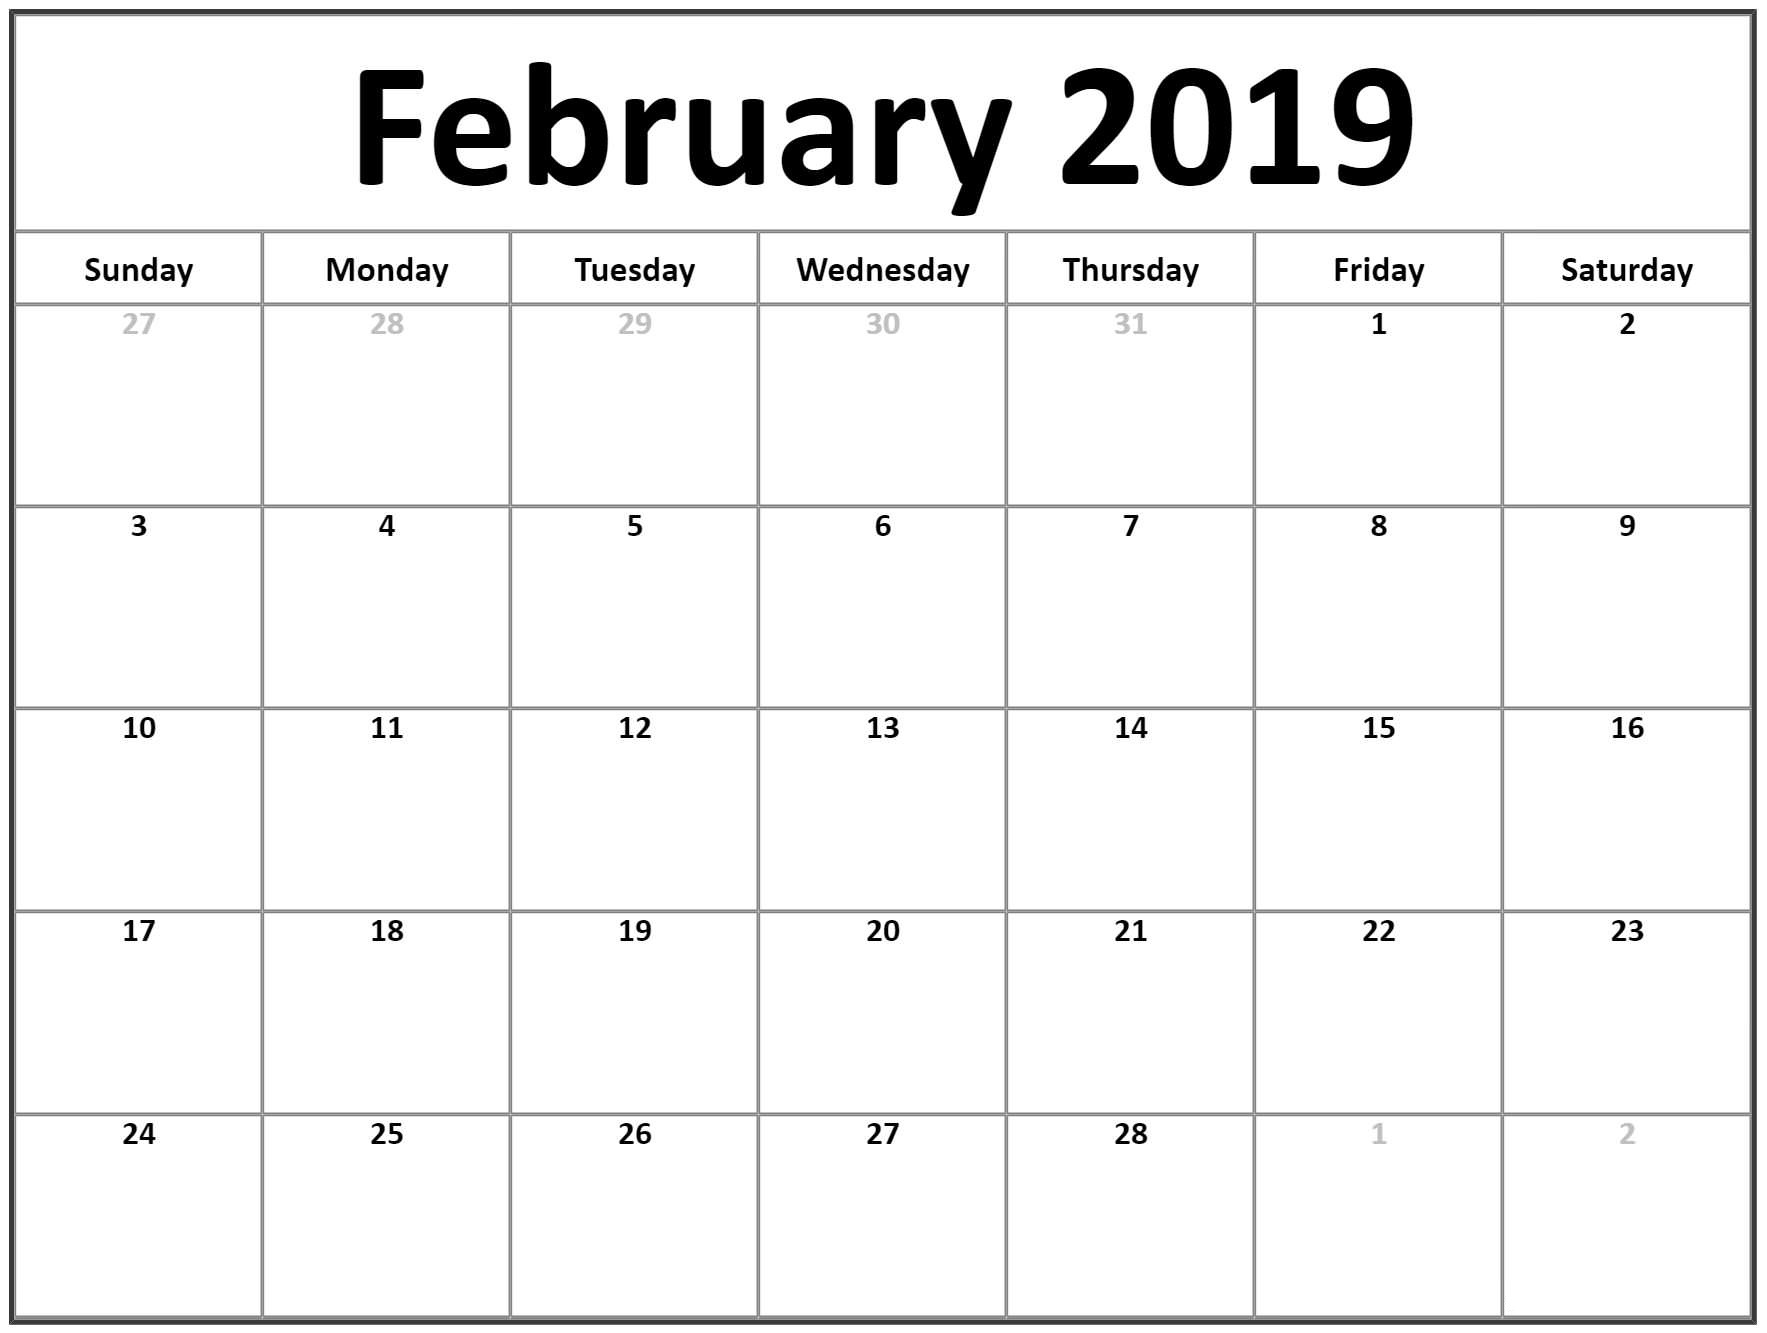 February 2019 Calendar Editable Document